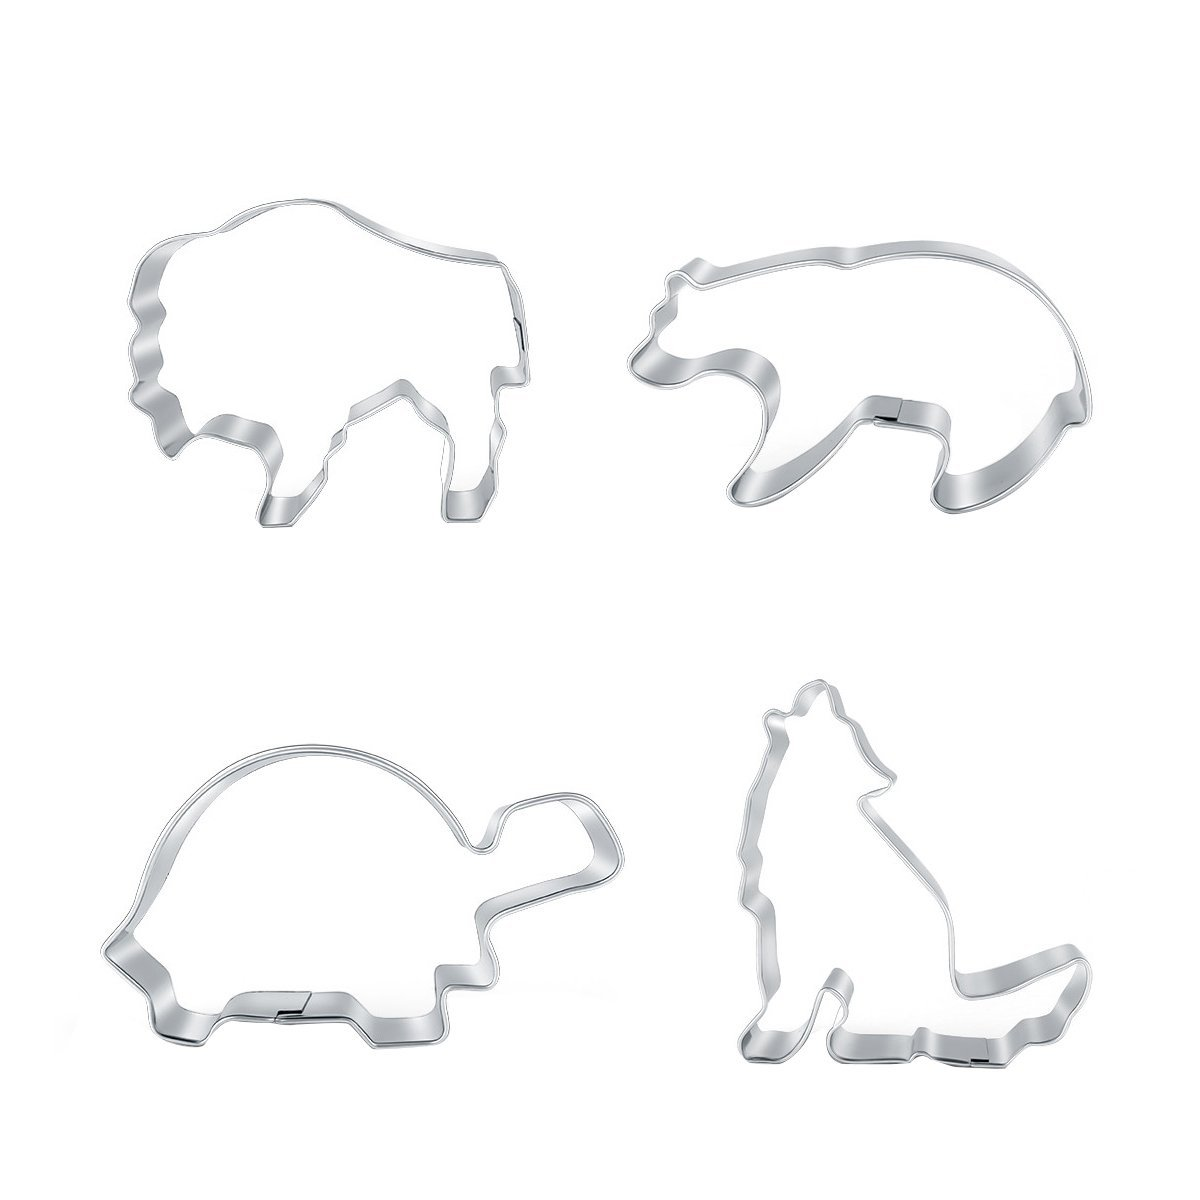 Animal Cookie Cutters Set - Polar Bear, Lion, Turtle, Wolf Stainless Steel 4 Pics Cracker Pastry Fordant Molds